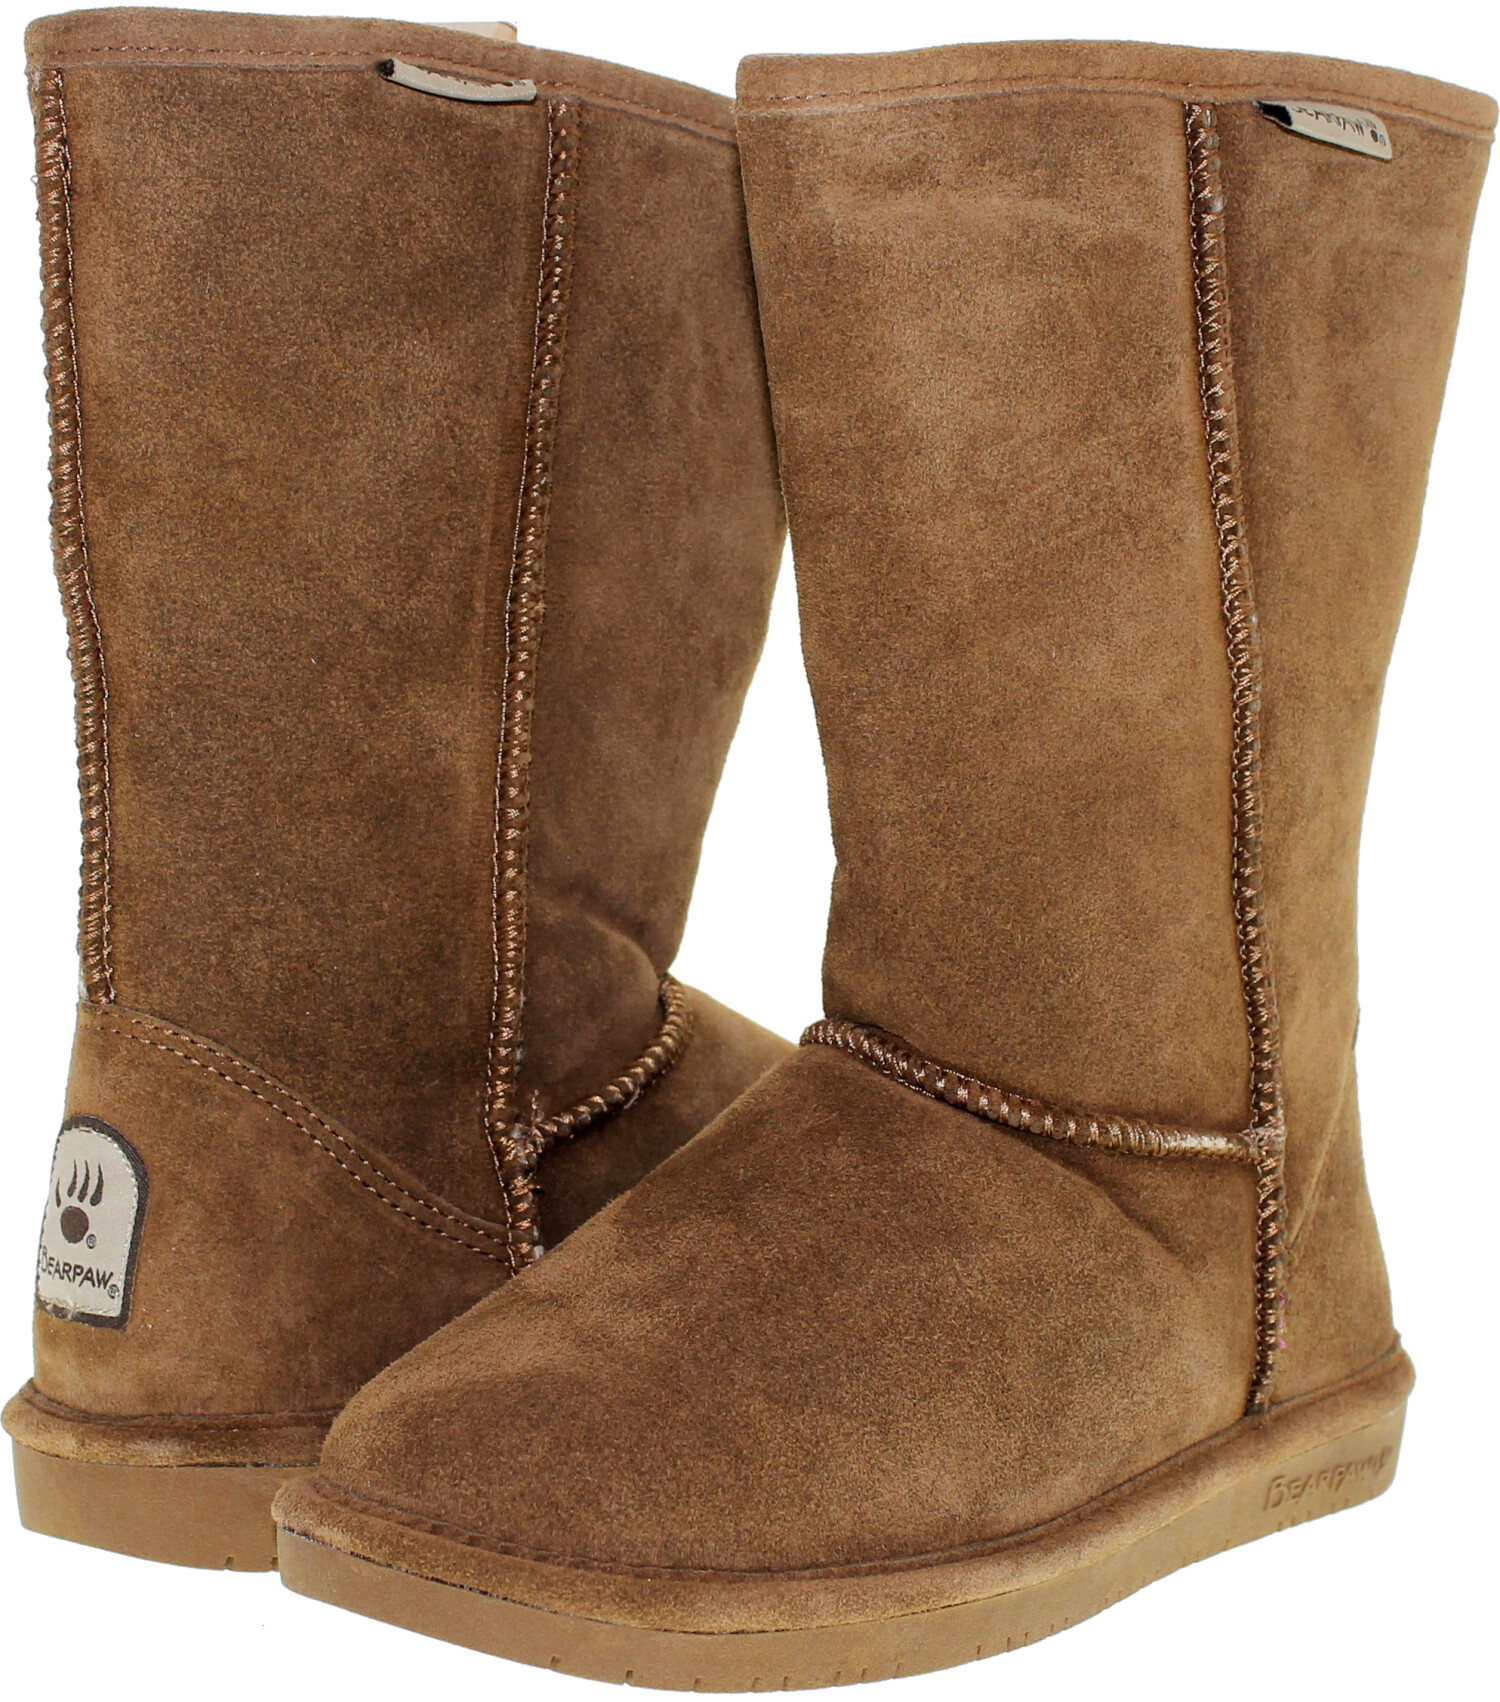 Bearpaw Women's Emma Hickory Mid-Calf Suede Boot - 9M